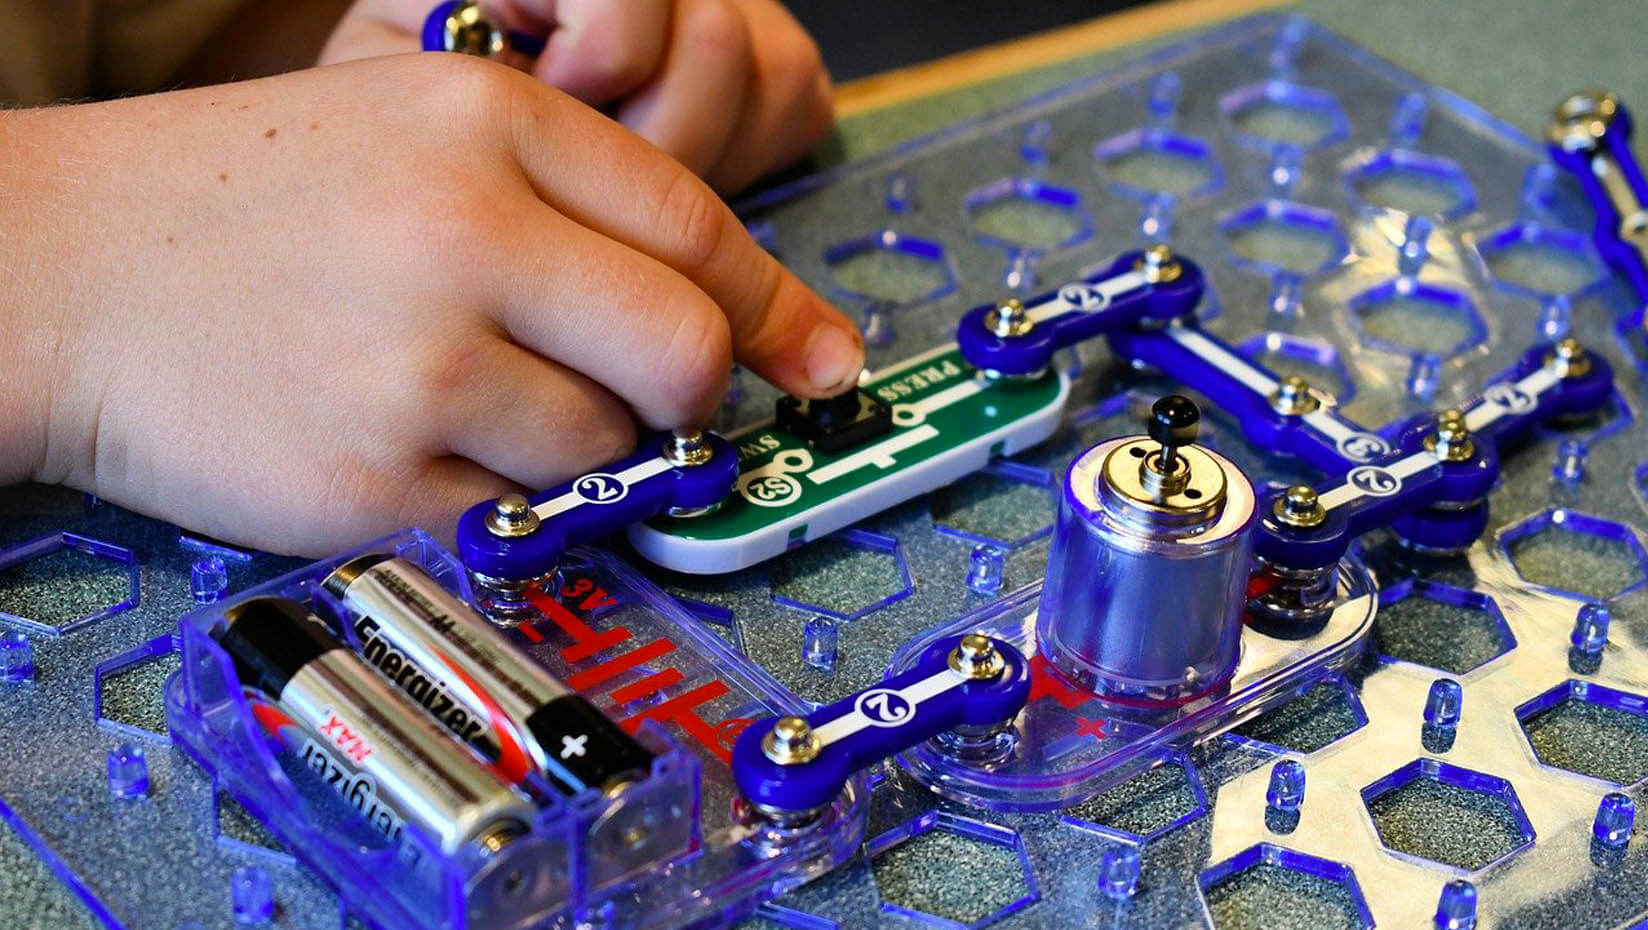 Student working with a circuit